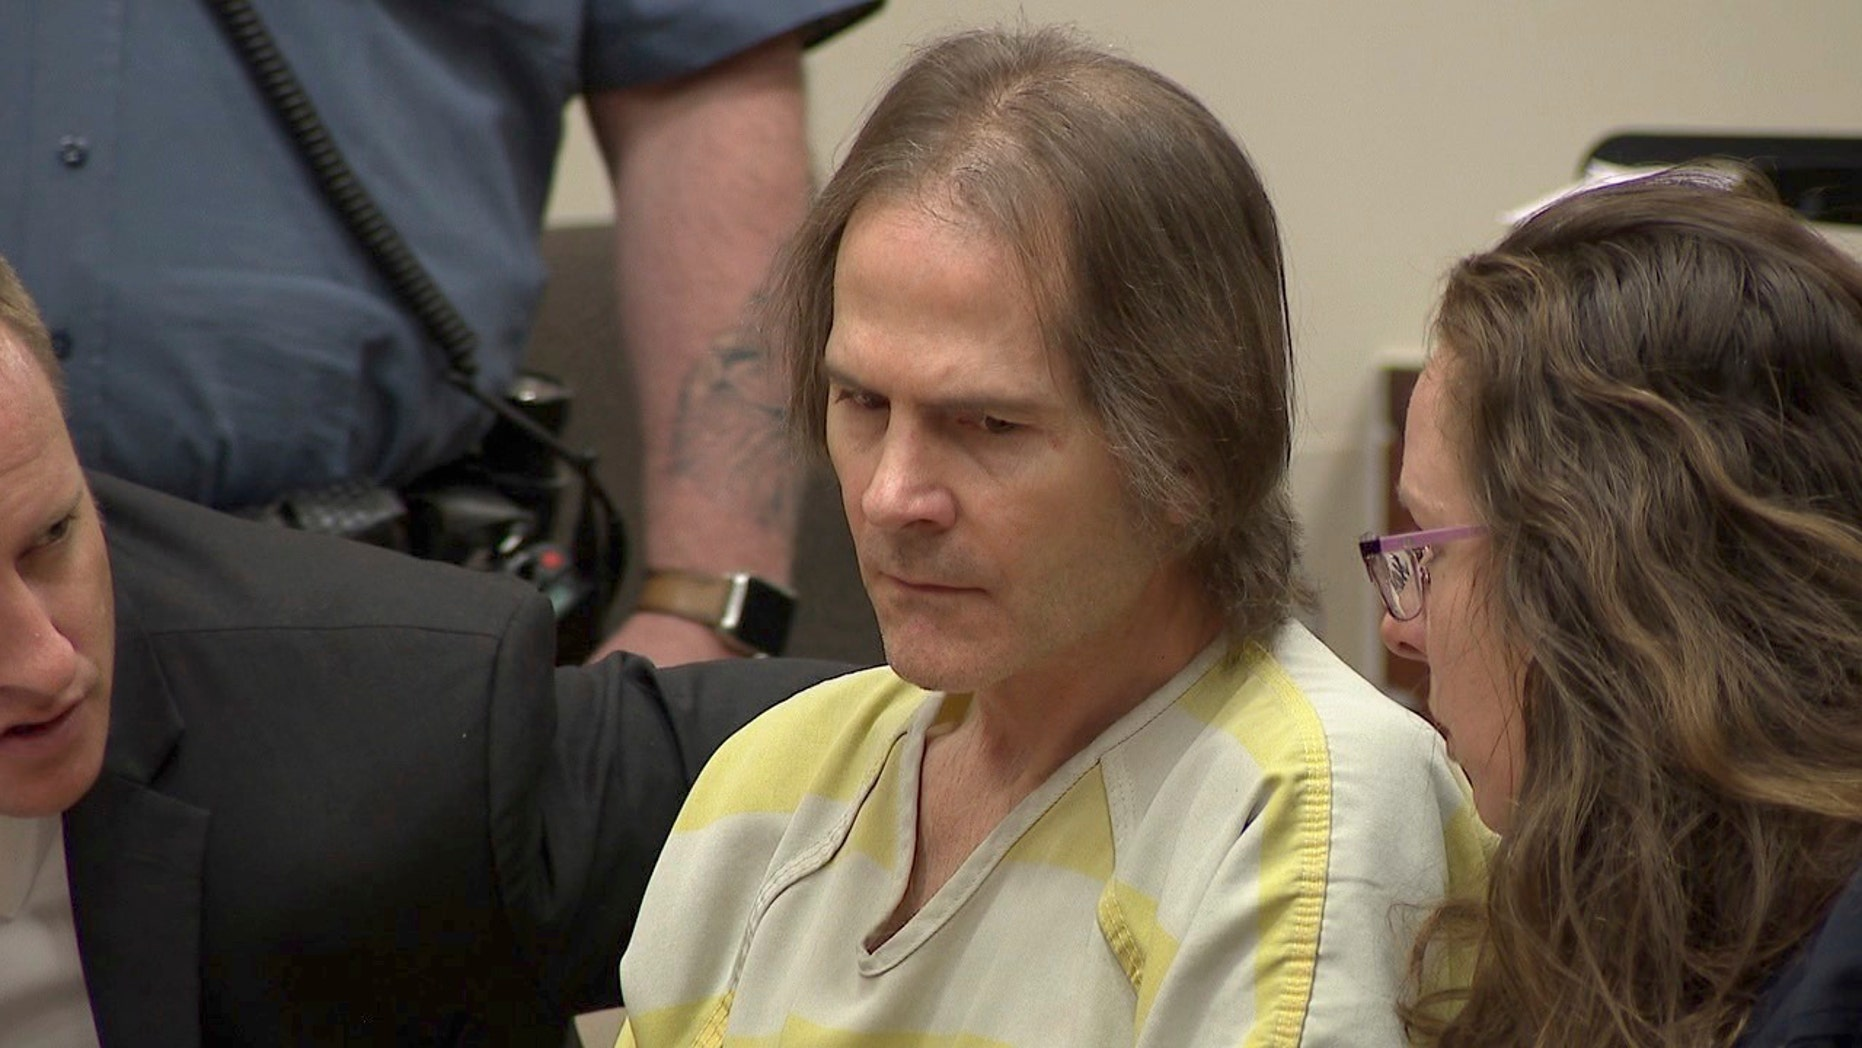 This image made from video shows Scott Ostrem in court in Brighton, Colo., Friday, Oct. 19. 2018. Ostrem, who gunned down three people in a suburban Denver Walmart on 2017, was sentenced Friday to life in prison without parole, but more than 11 months after the crime, his motive remains a mystery. (KMGH-TV via AP, Pool)